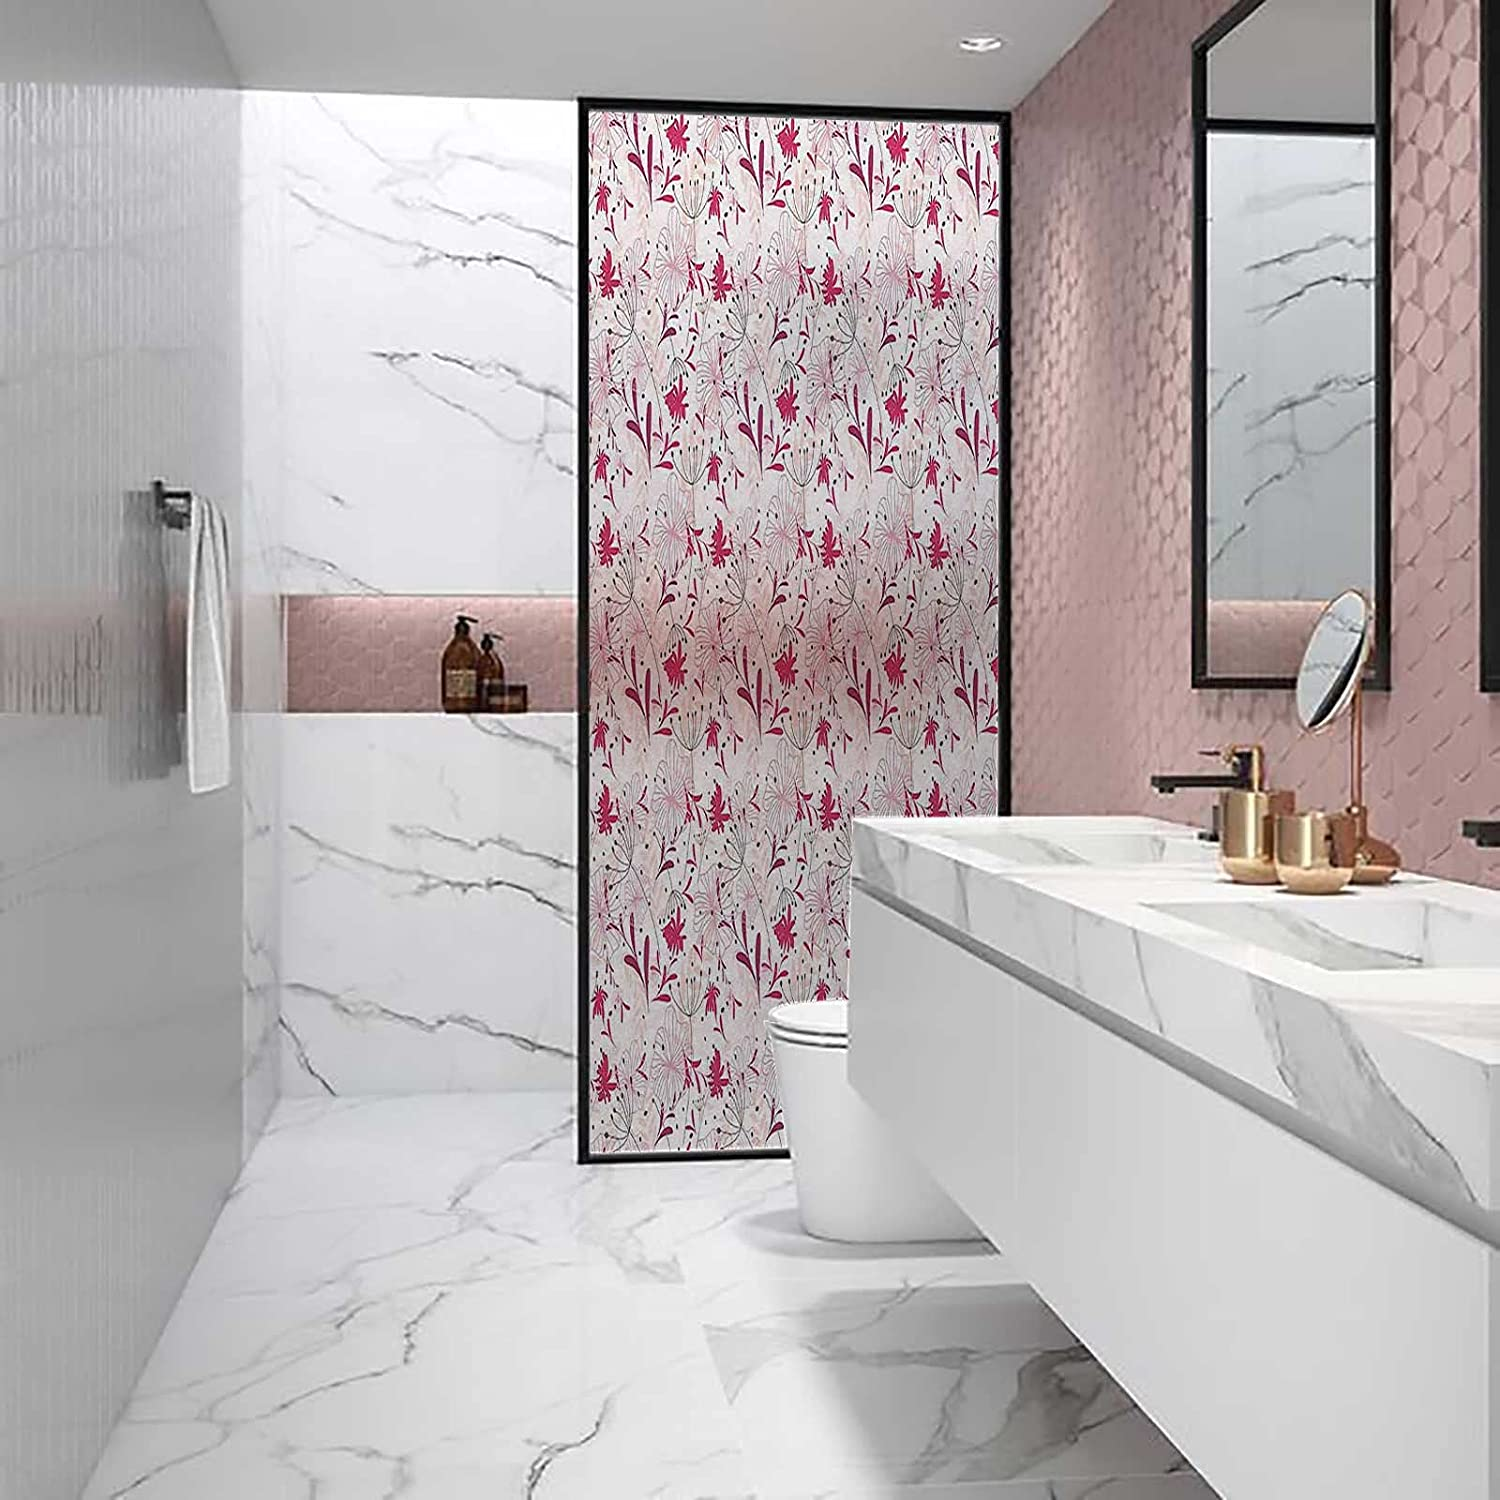 Window Decorative Reflective Film Abstract Anti UV Max 73% OFF Pink Florets Max 57% OFF